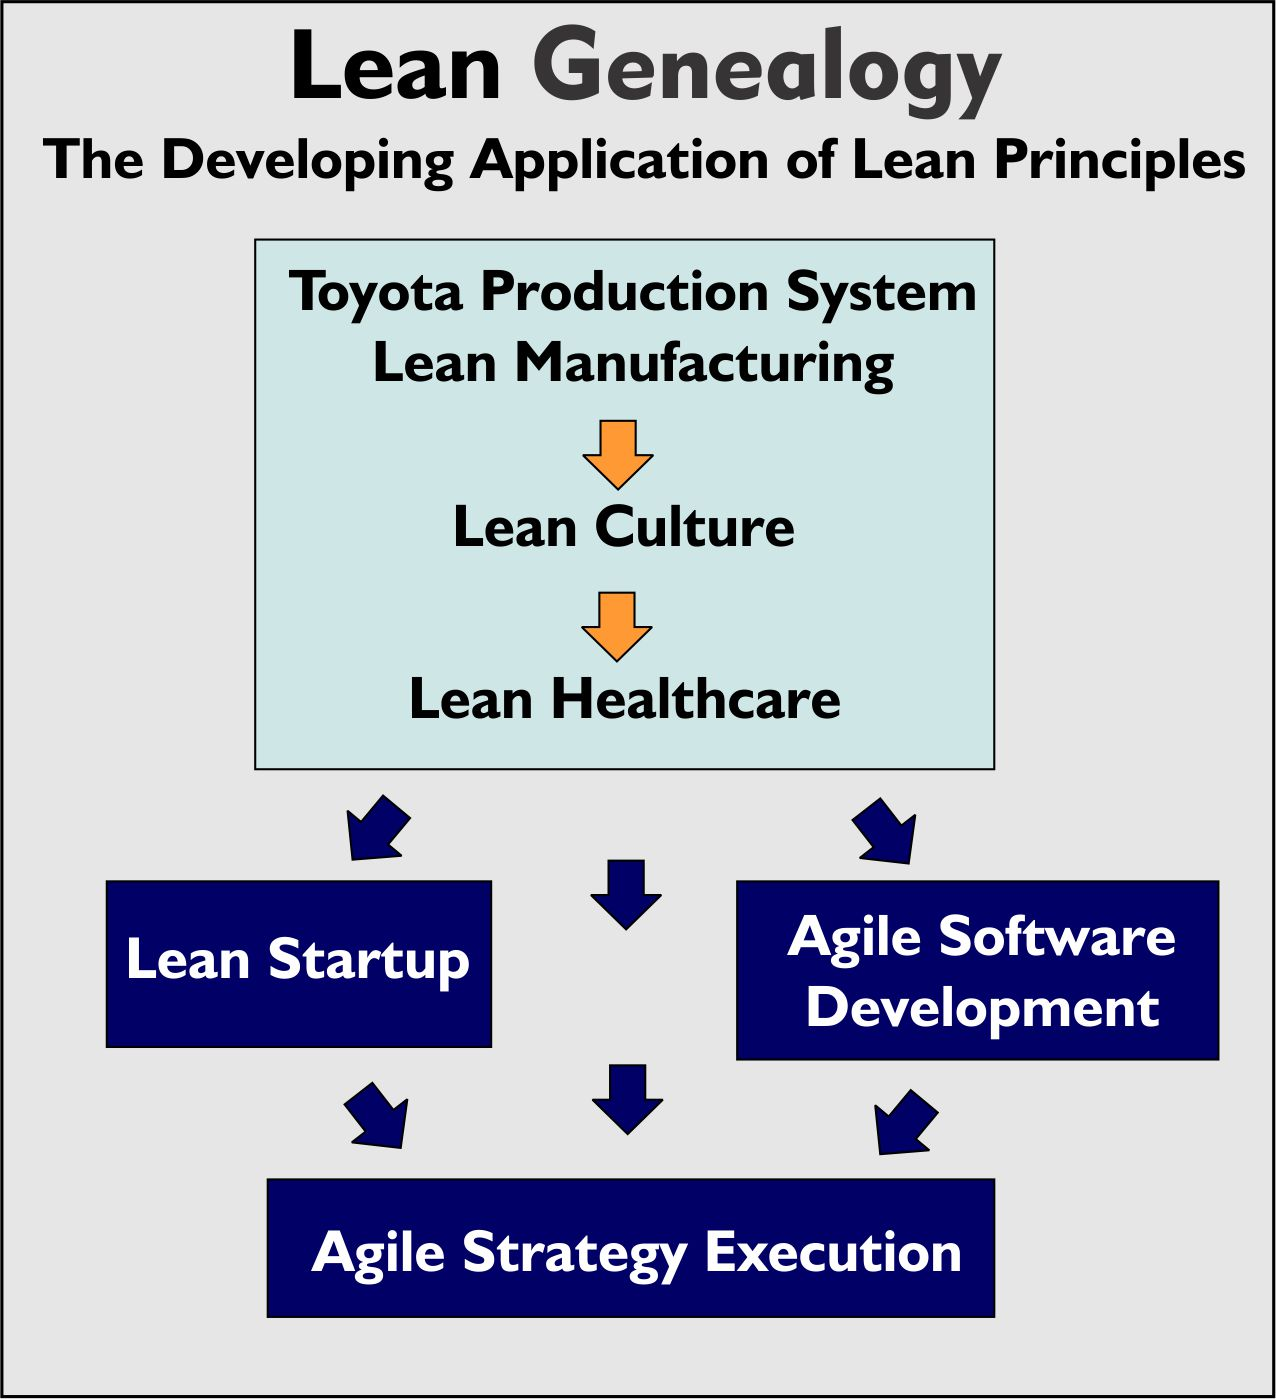 Agile Strategy Execution – Genealogy and Principles